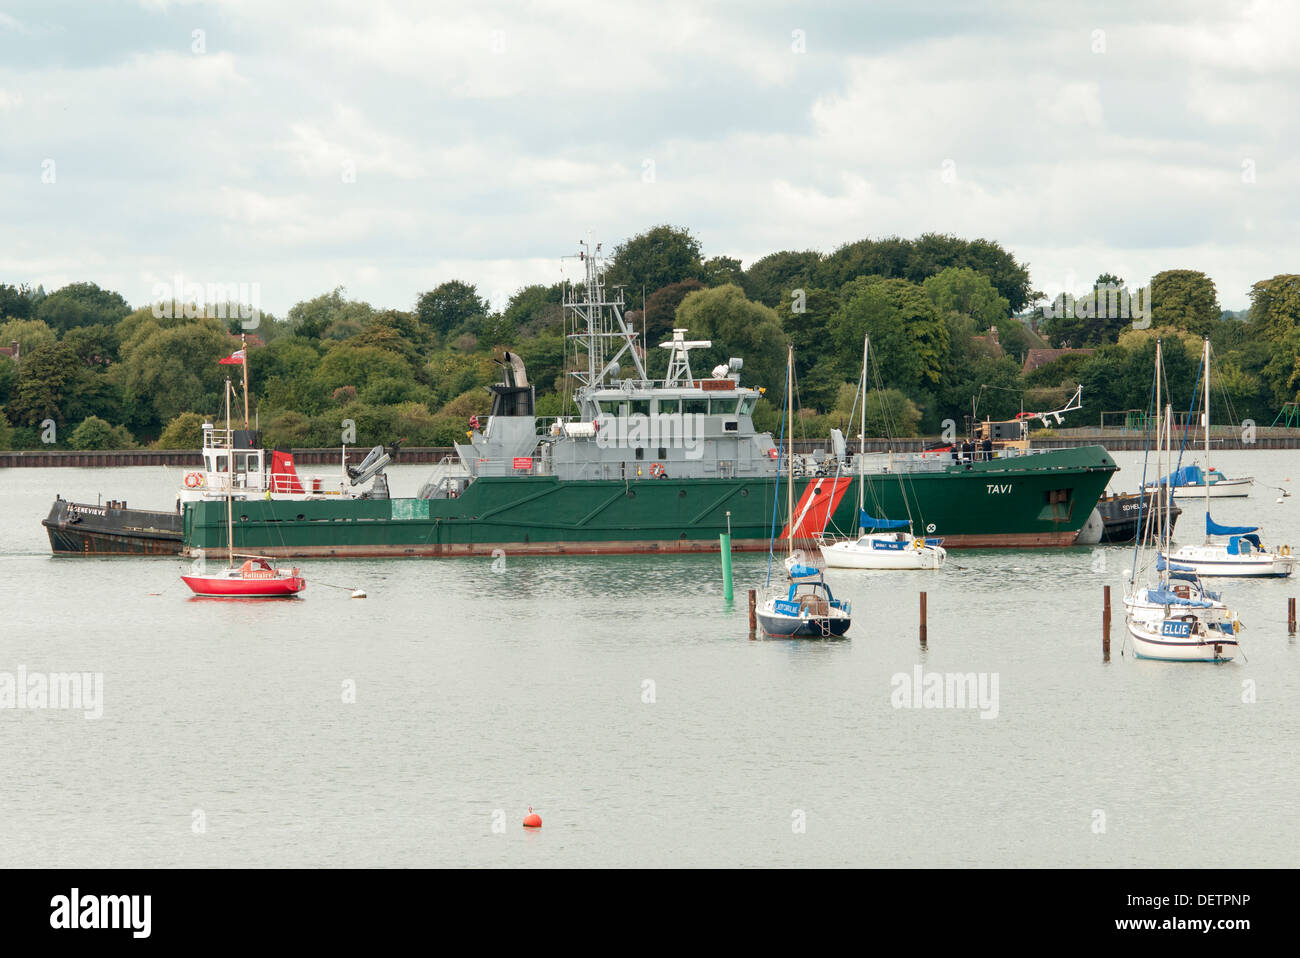 Tavi, large motor yacht being manoeuvred by tugs in Portsmouth Harbour - Stock Image